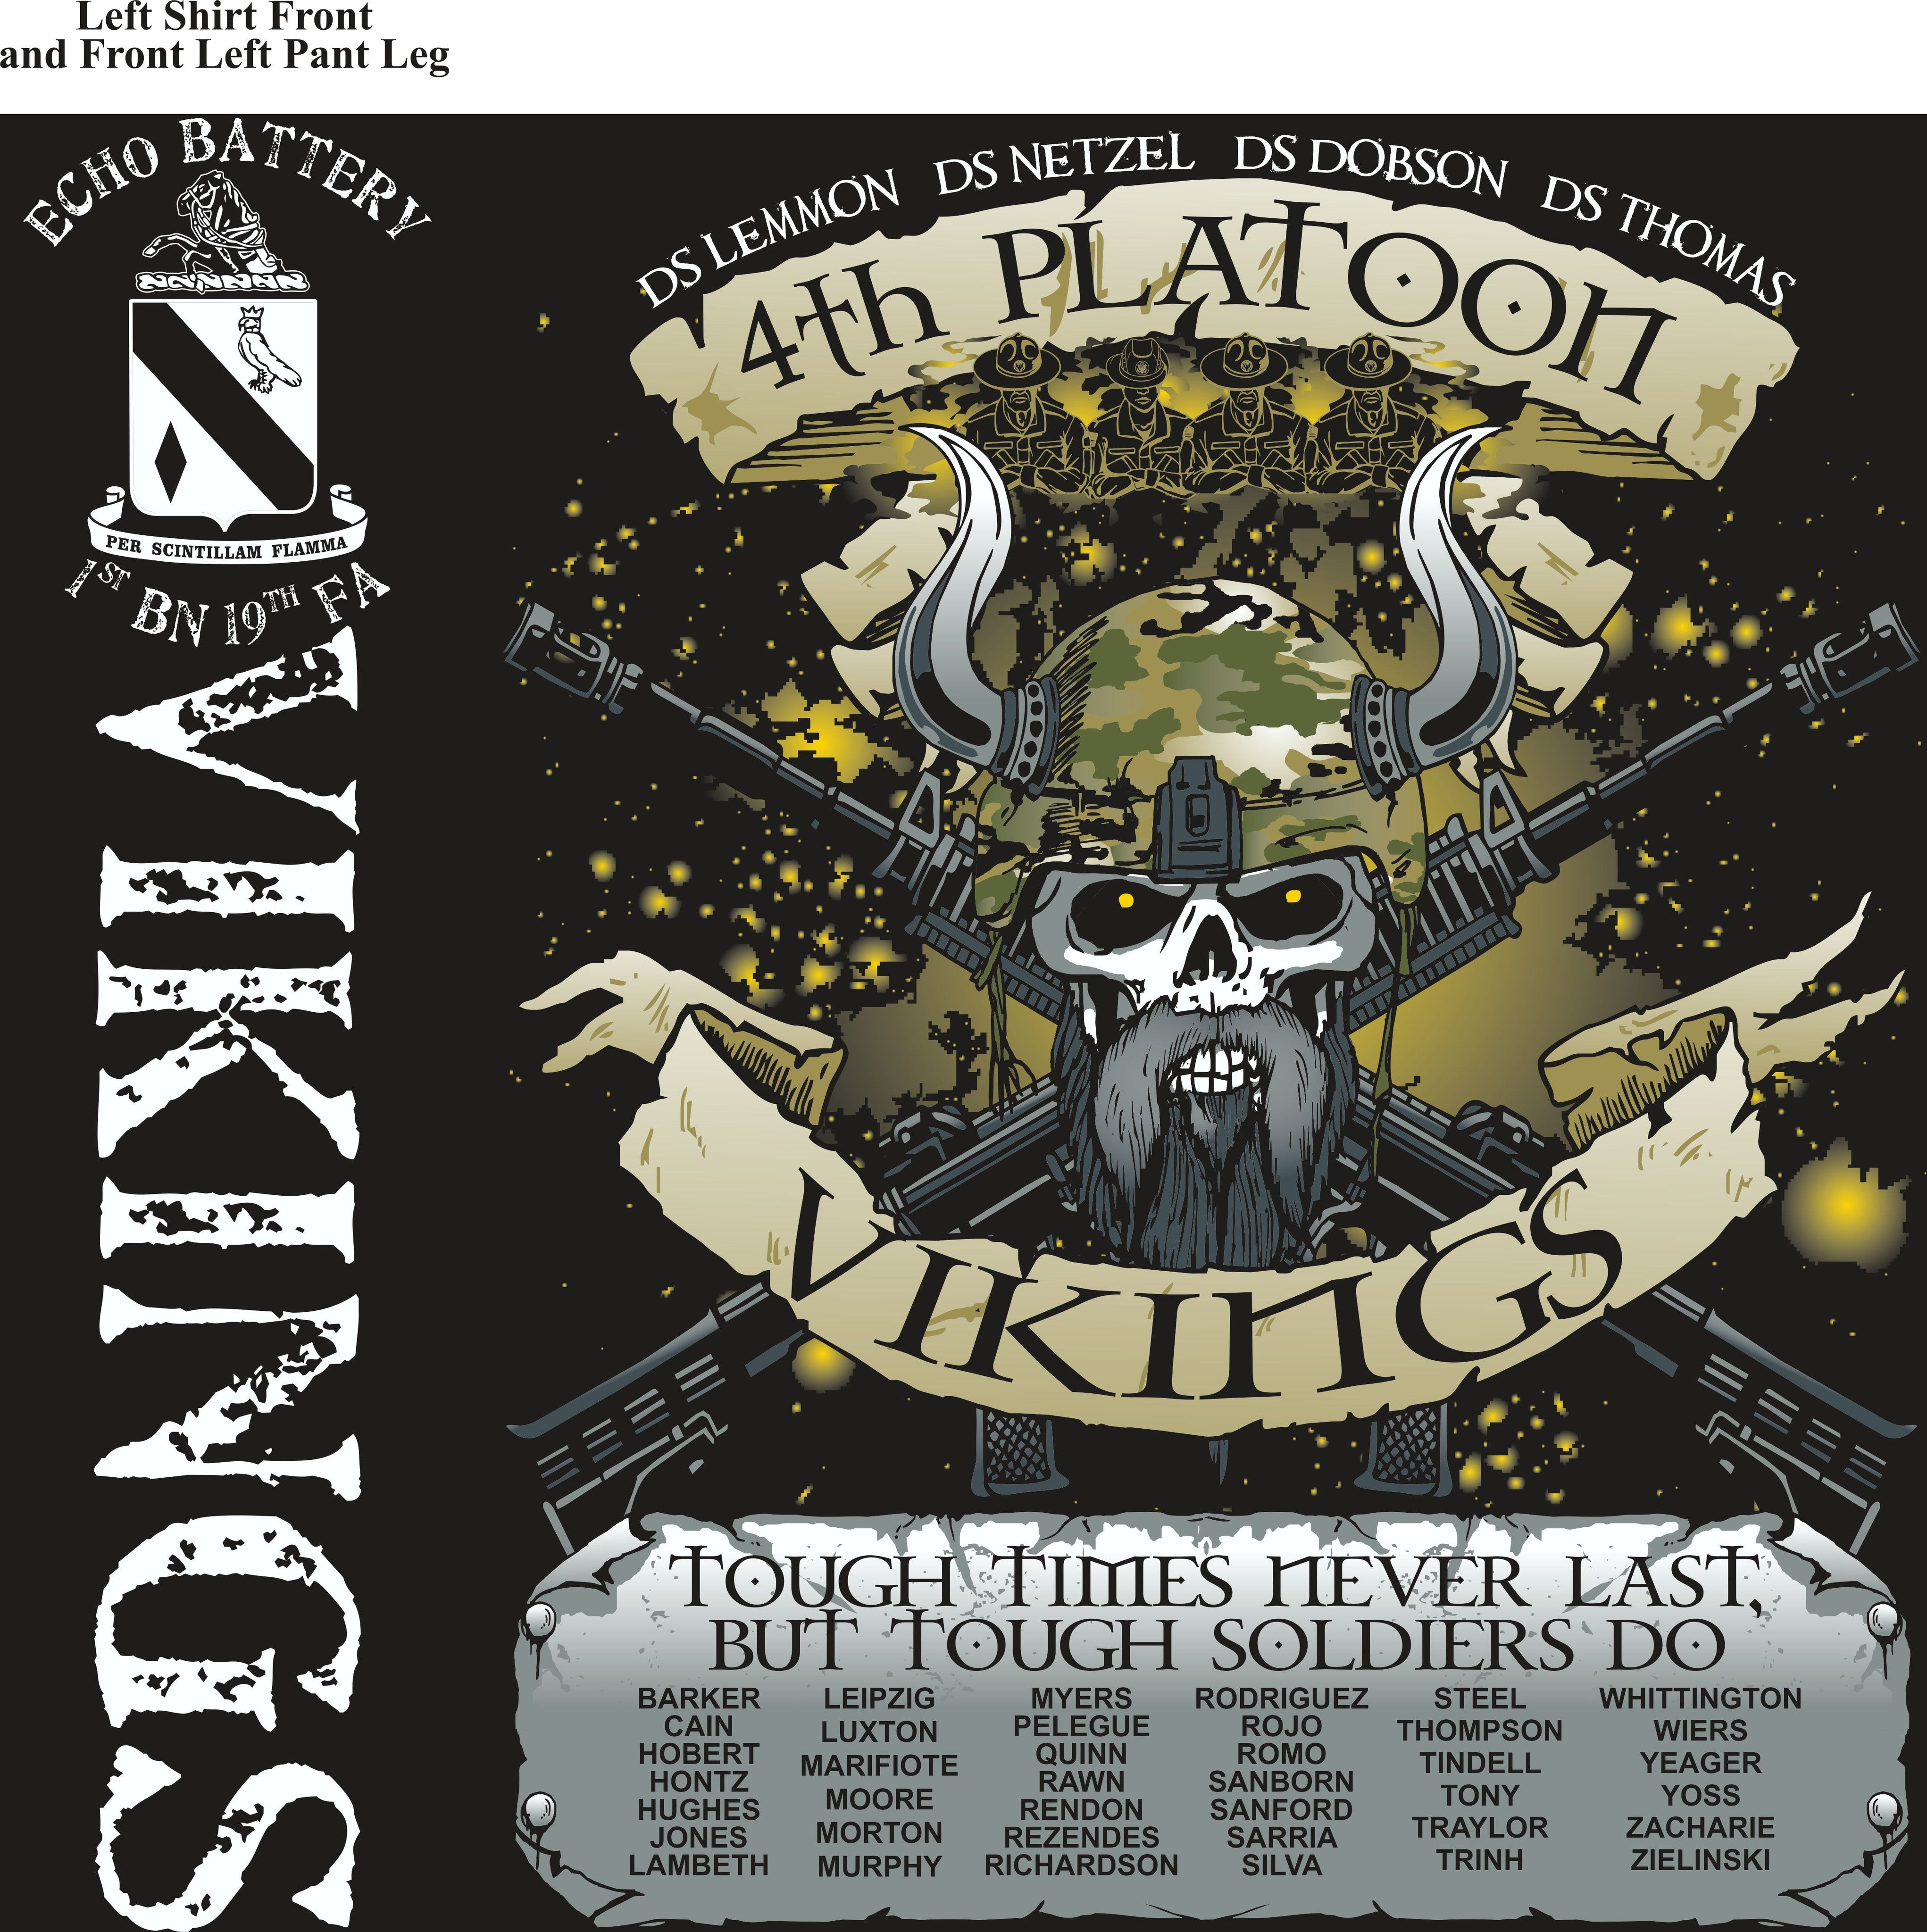 PLATOON SHIRTS (2nd generation print) ECHO 1st 19th VIKINGS JUNE 2017